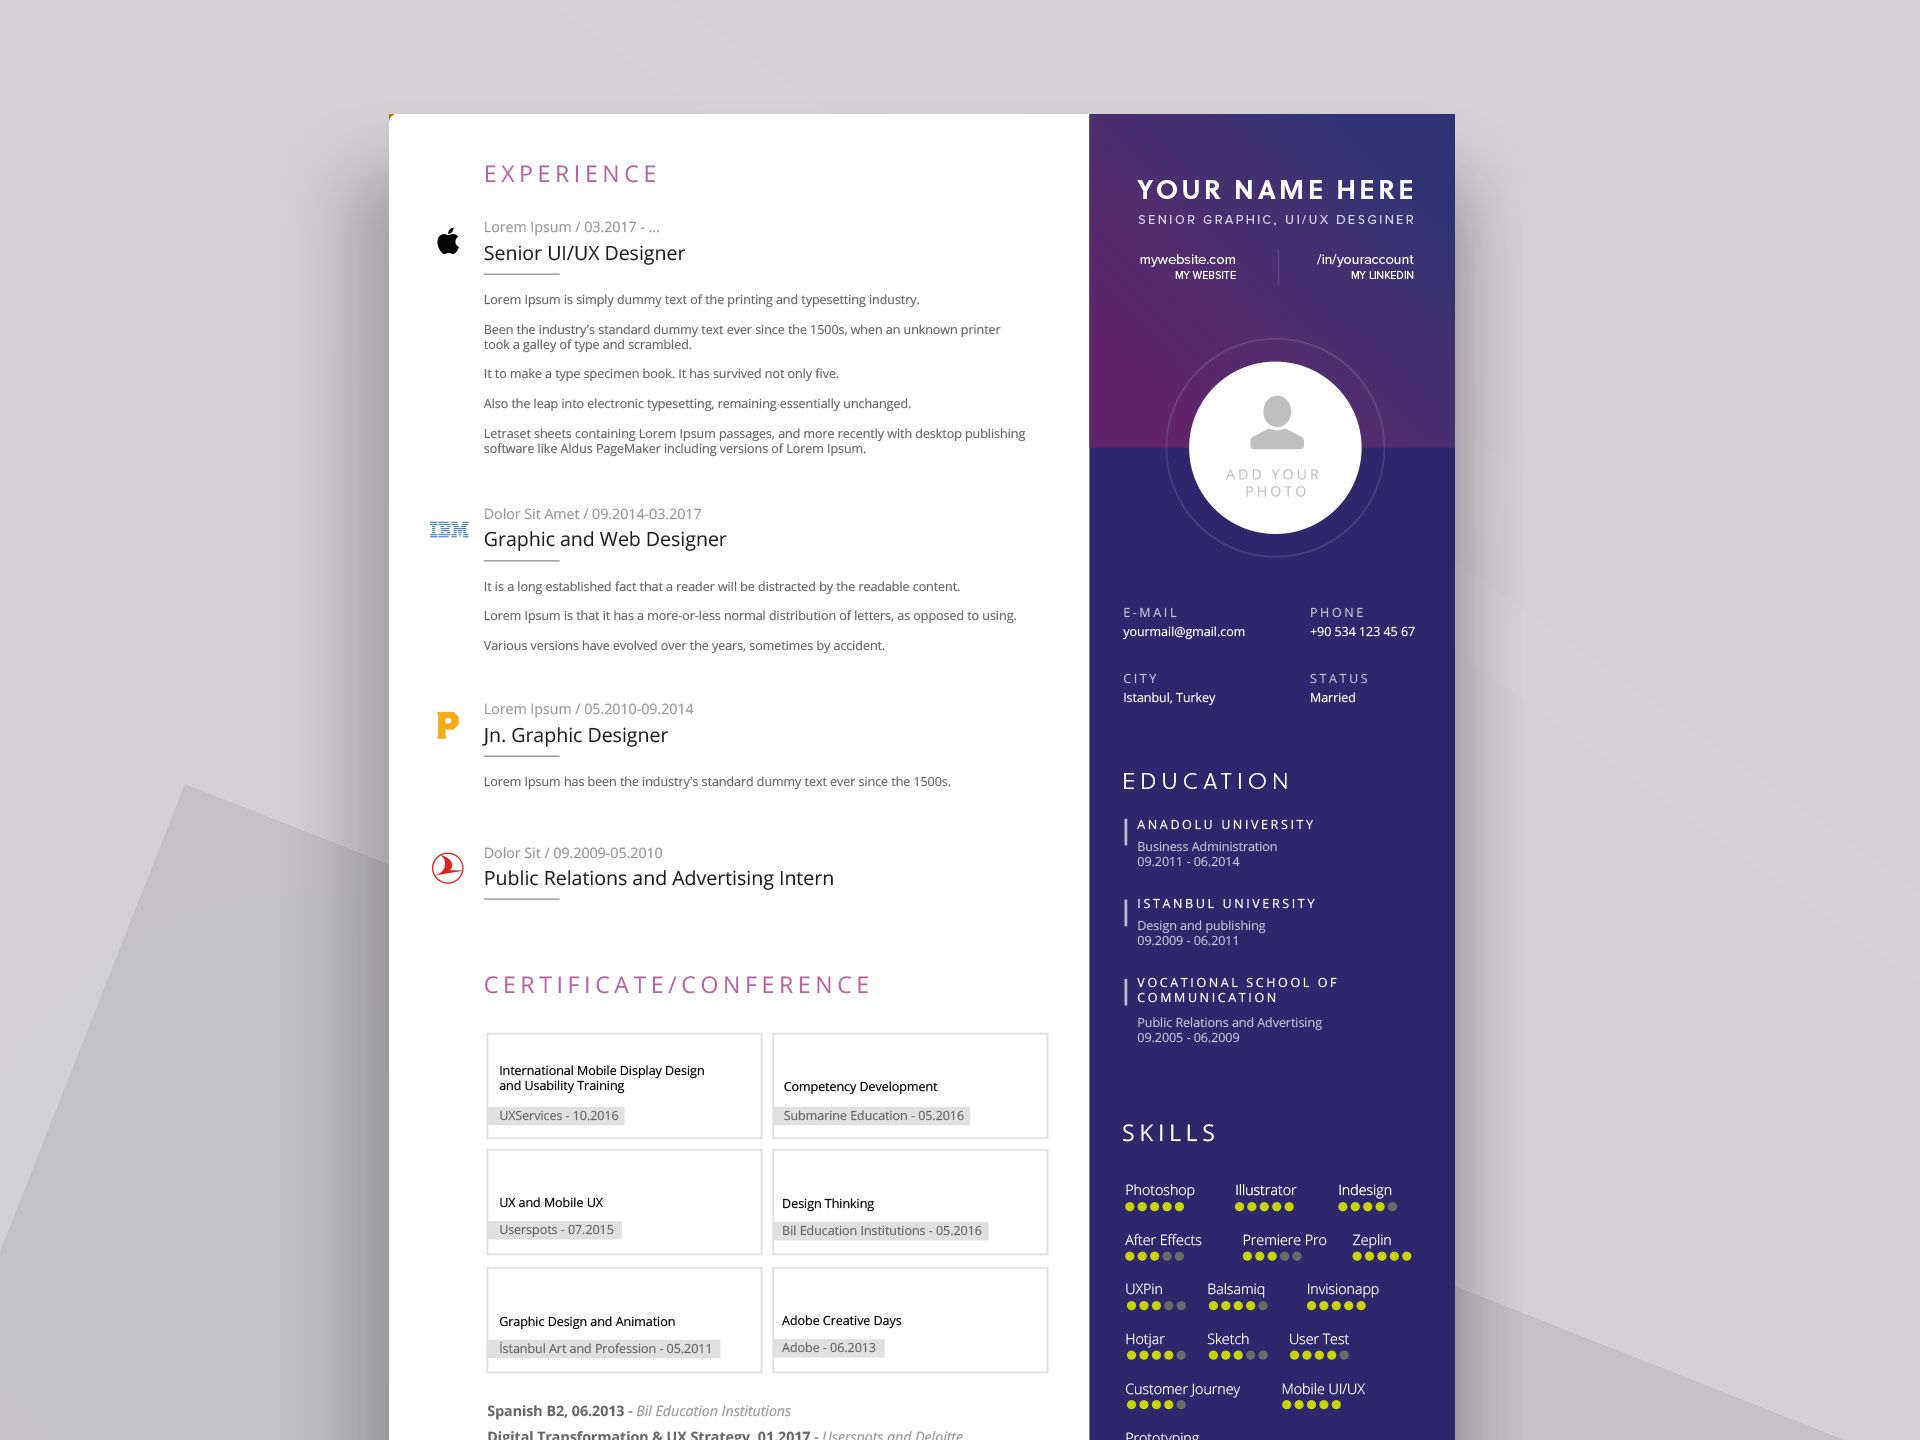 PPT Resume Template Free Download ResumeKraft, Image